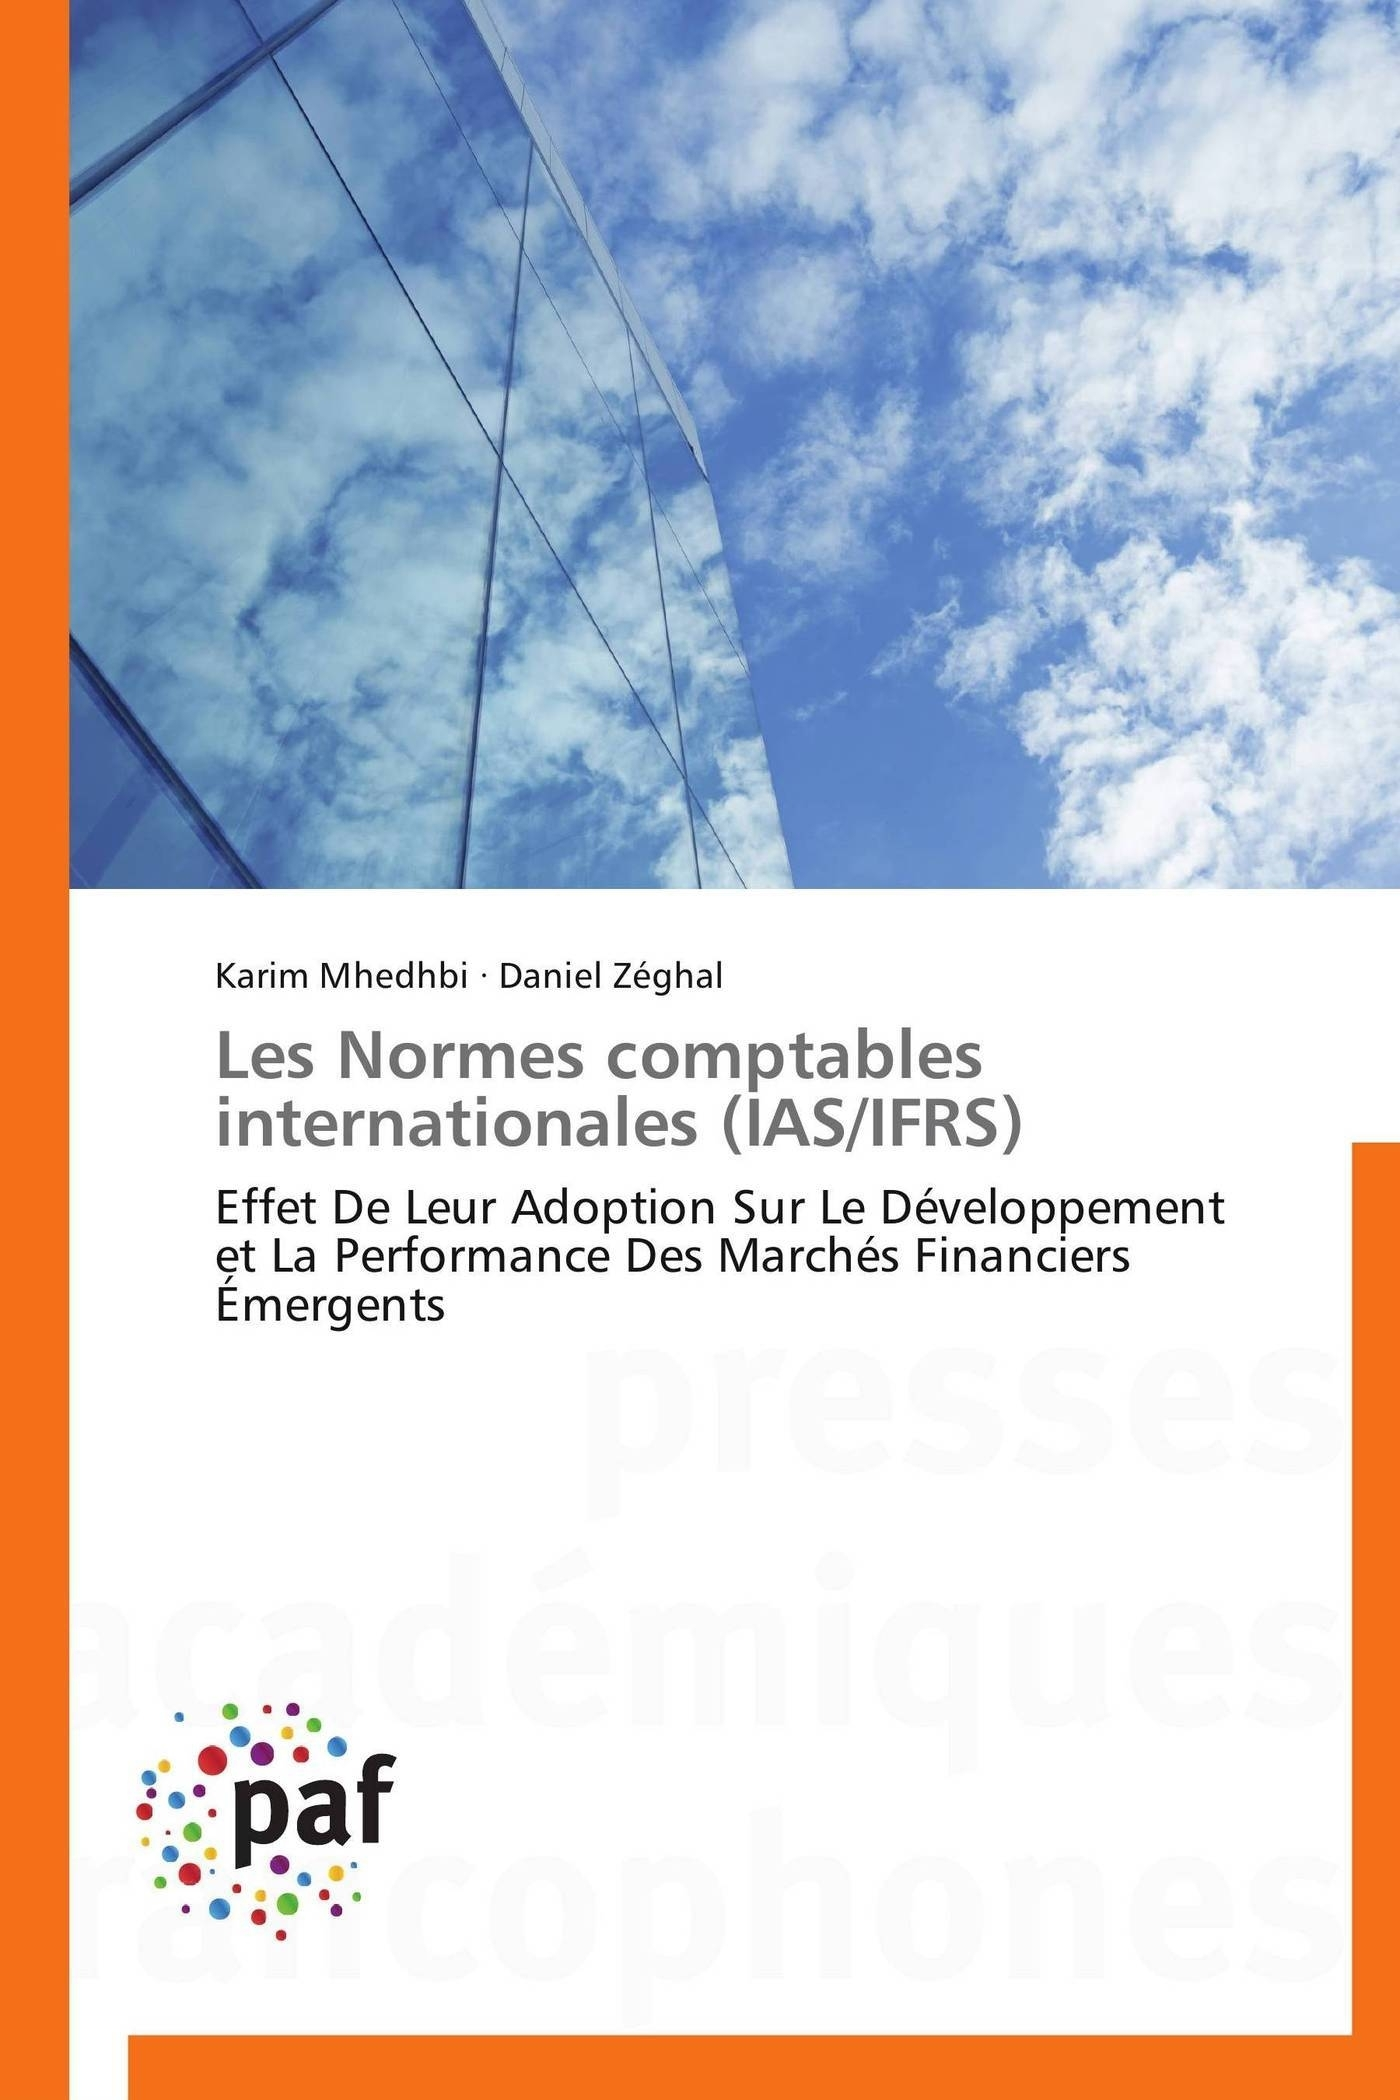 LES NORMES COMPTABLES INTERNATIONALES (IAS/IFRS)